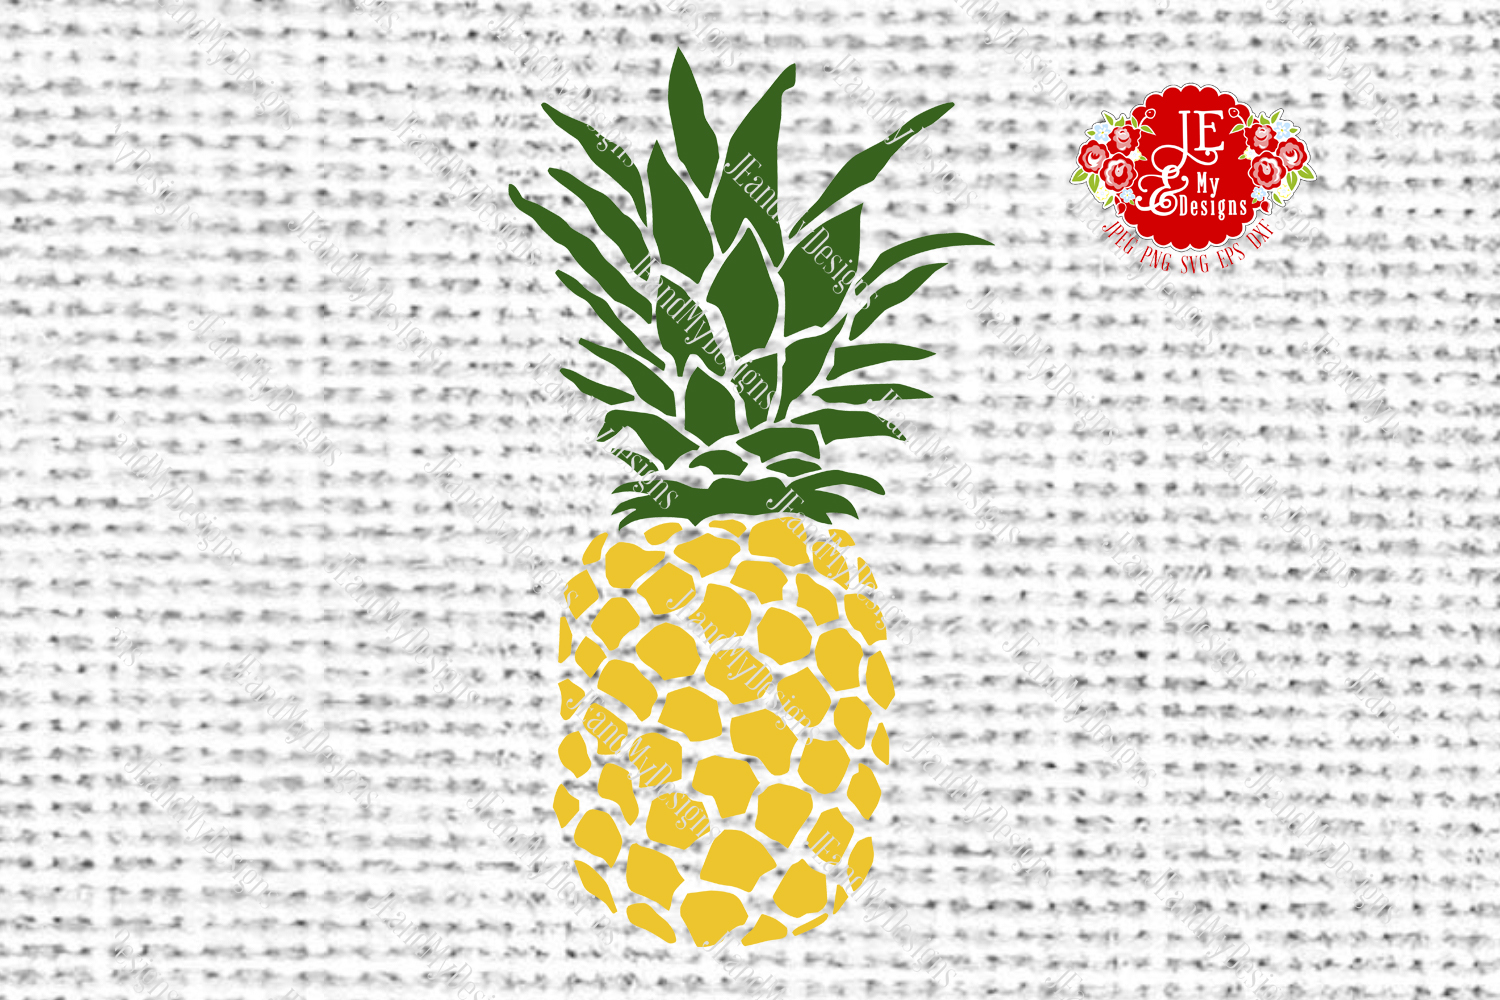 Golden Pineapple SVG, JPEG, PNG, EPS, DXF example image 4